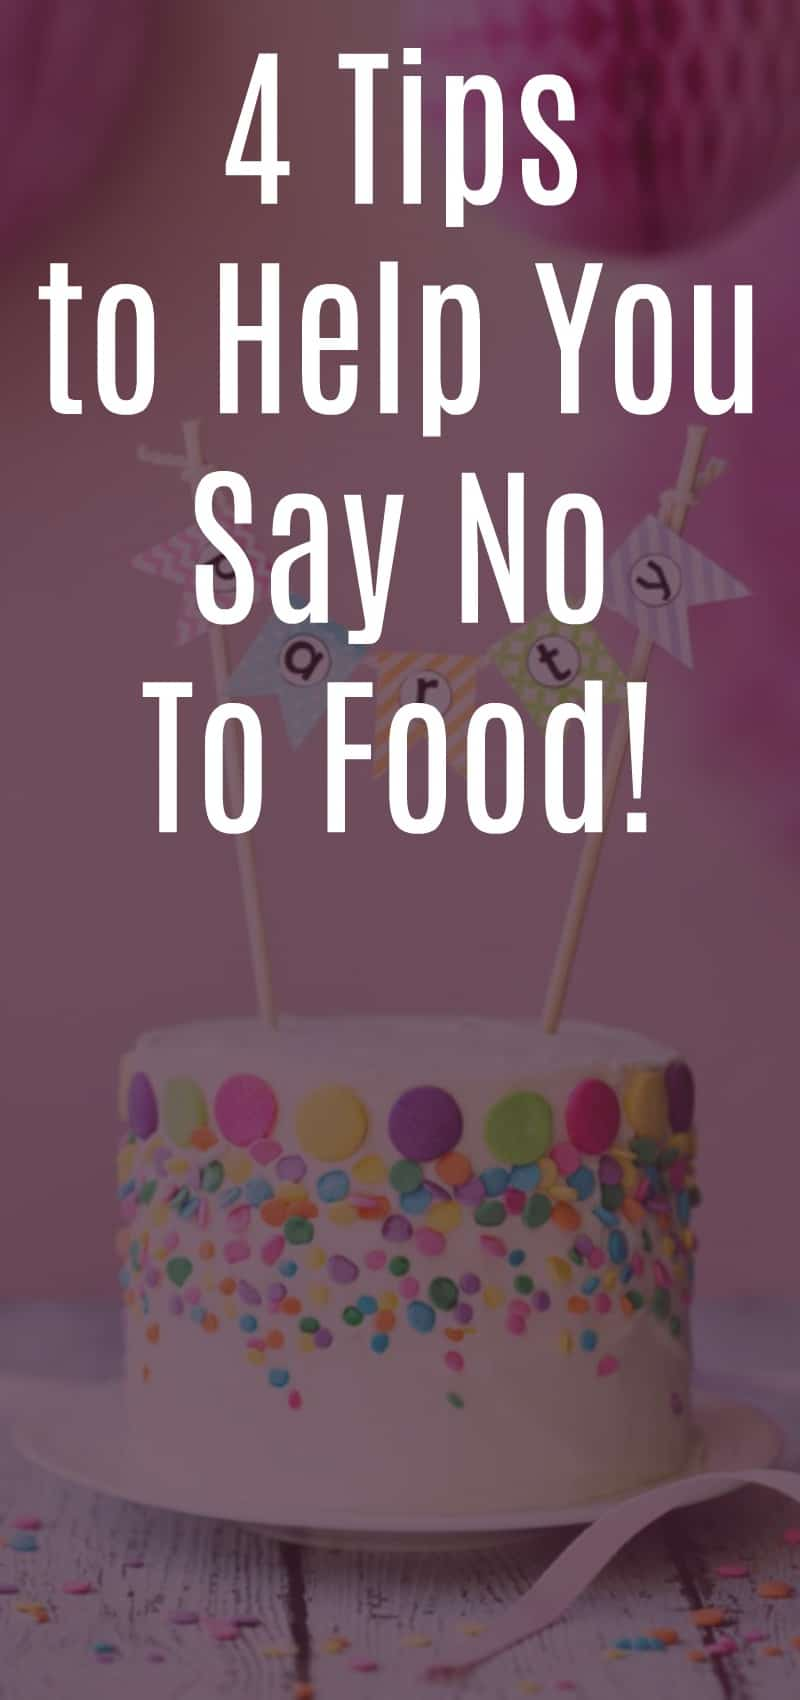 4 Tips to Help You Say No to Food